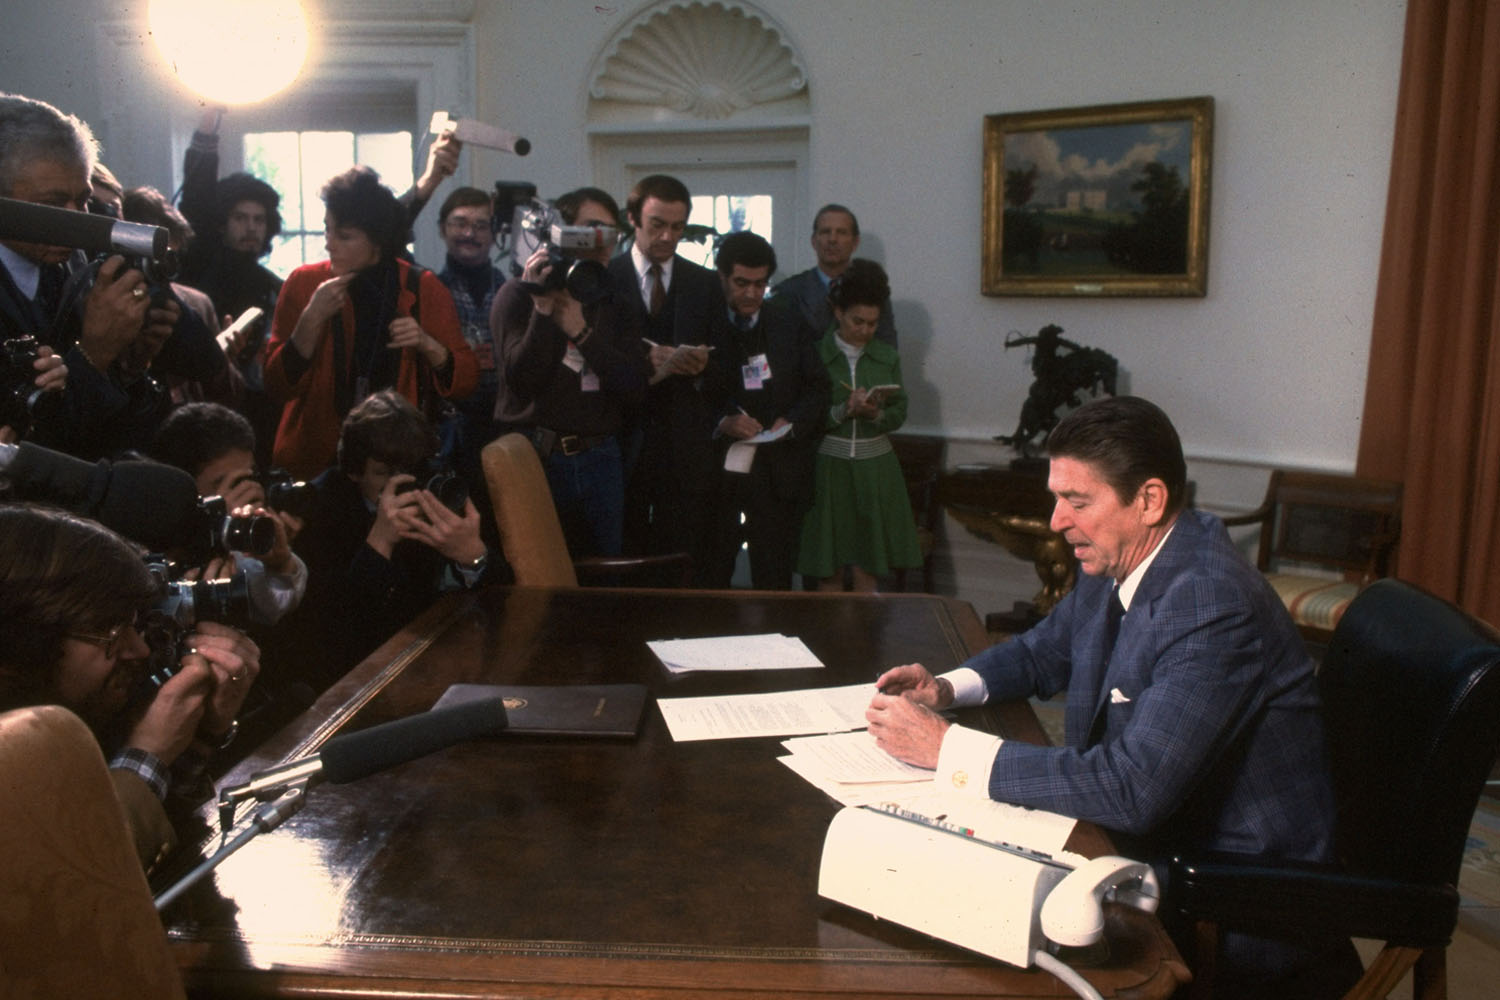 President Ronald Reagan in front of reporters in the Oval Office for the first time as President, 1981.